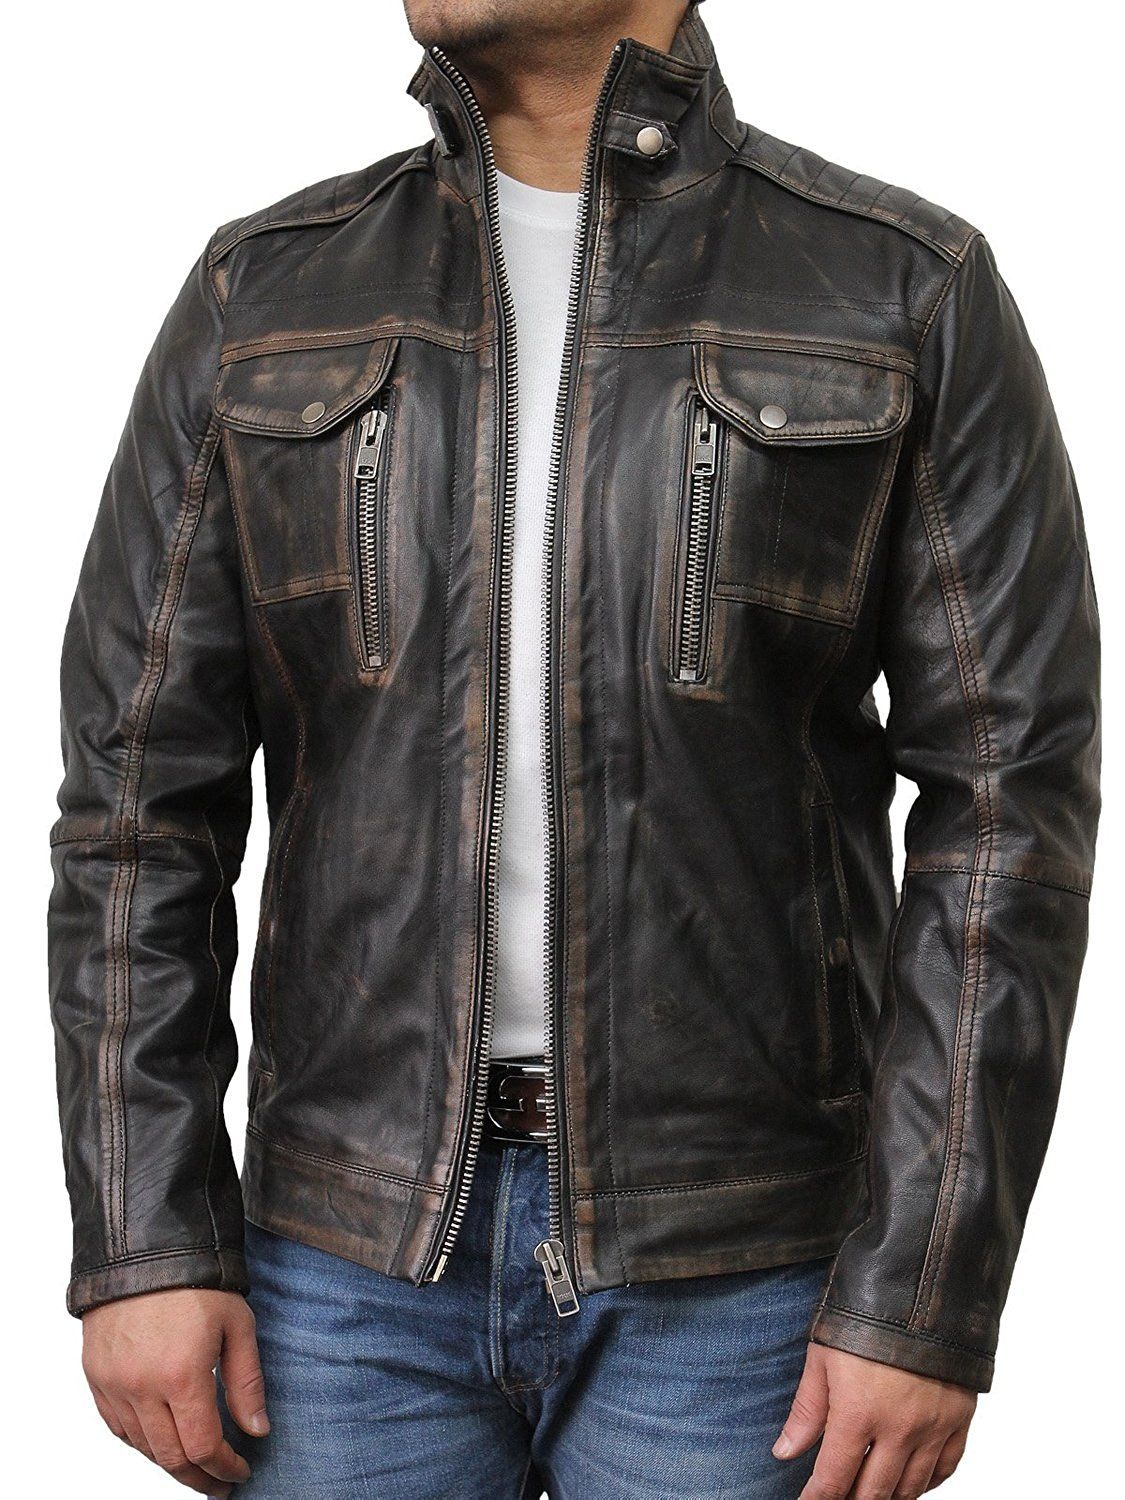 Brandslock Men s Vintage Leather Biker Jacket at Amazon Men s Clothing  store  a8de588fcc78